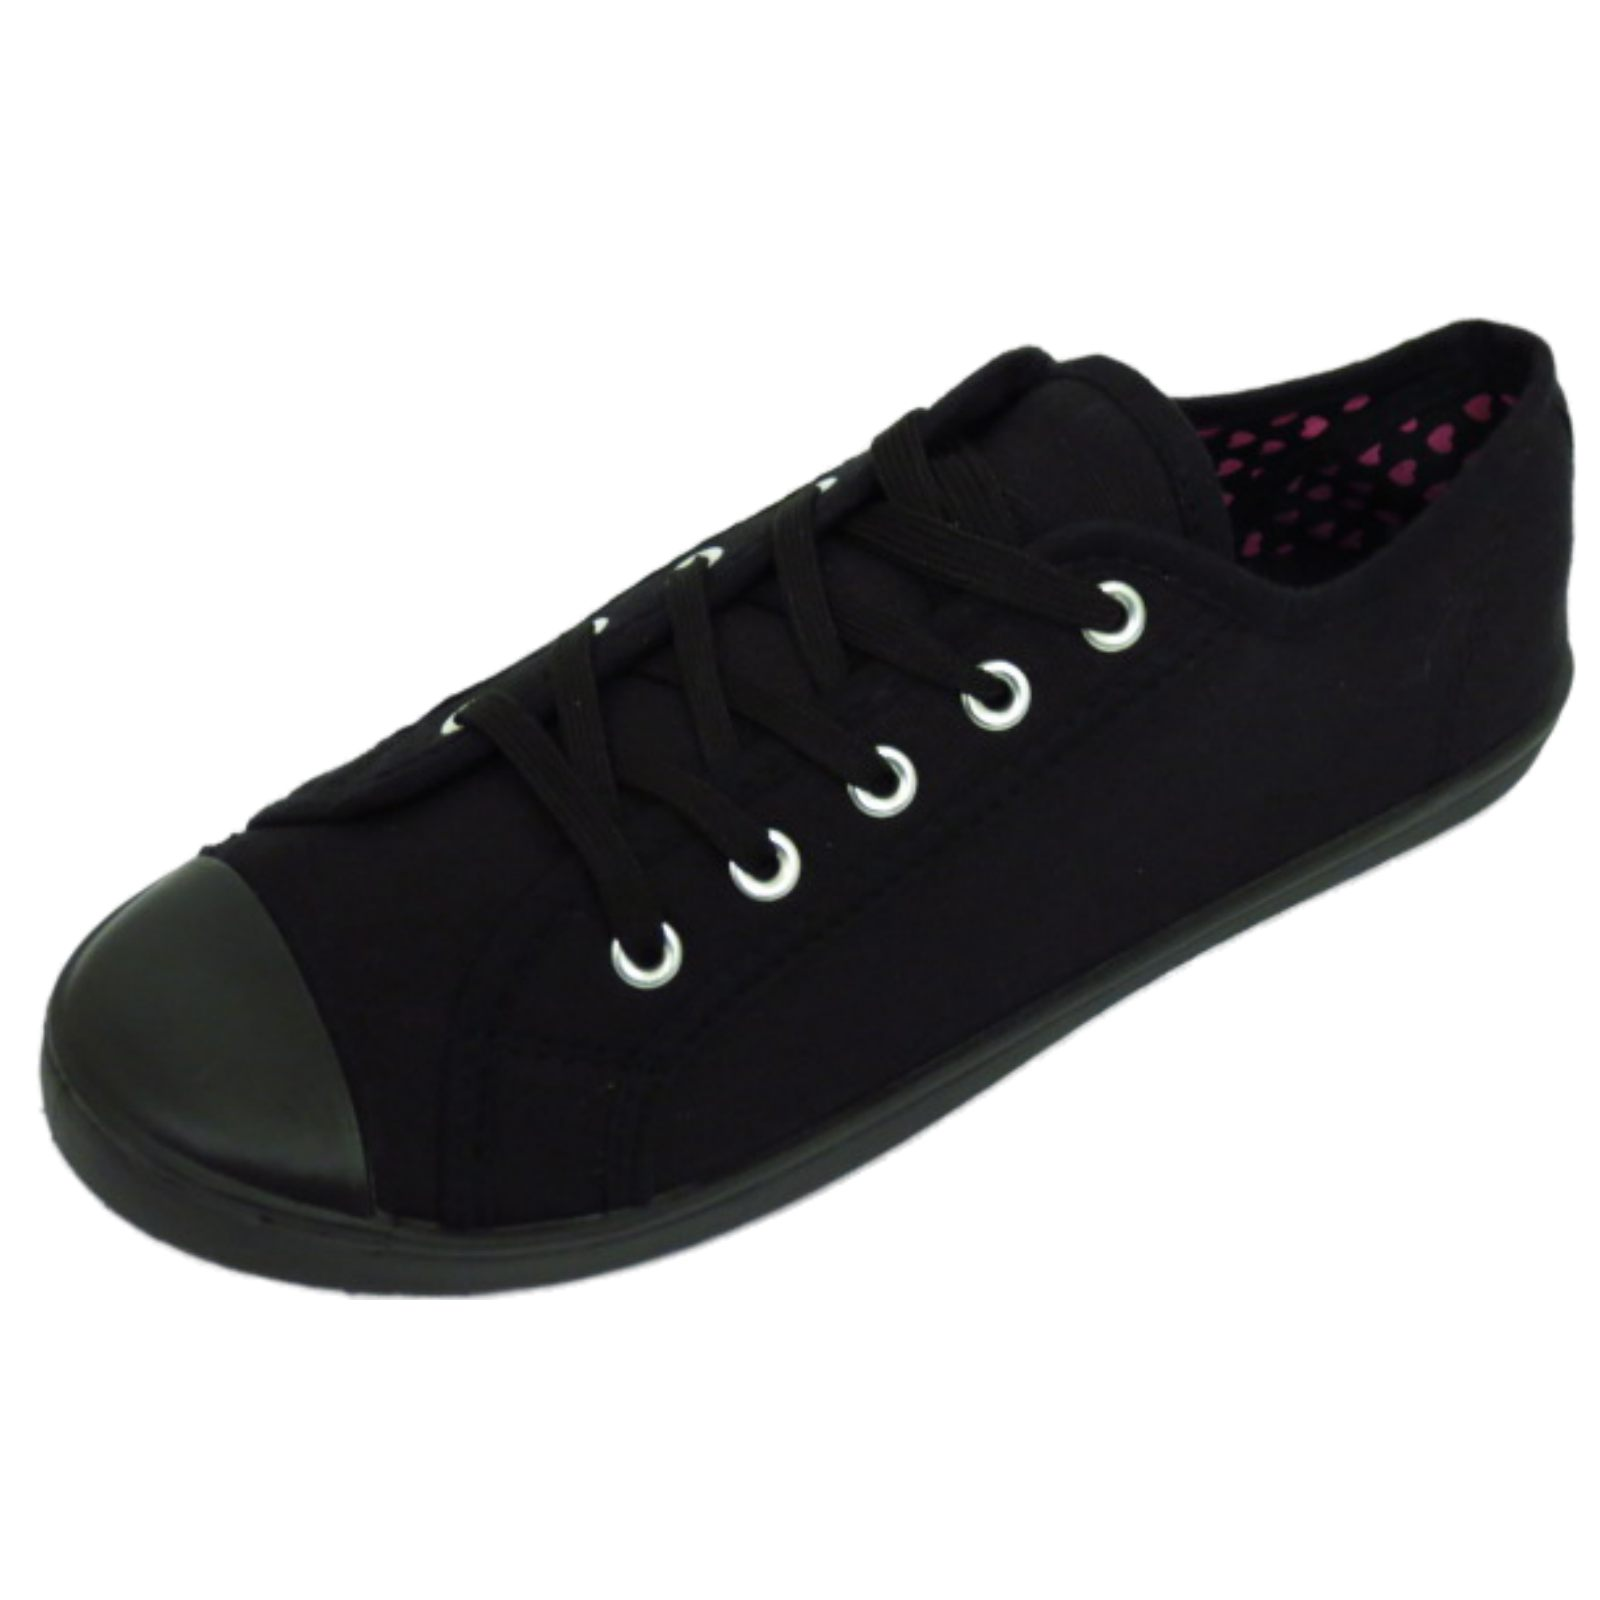 Flat Black Lace Up Work Shoes